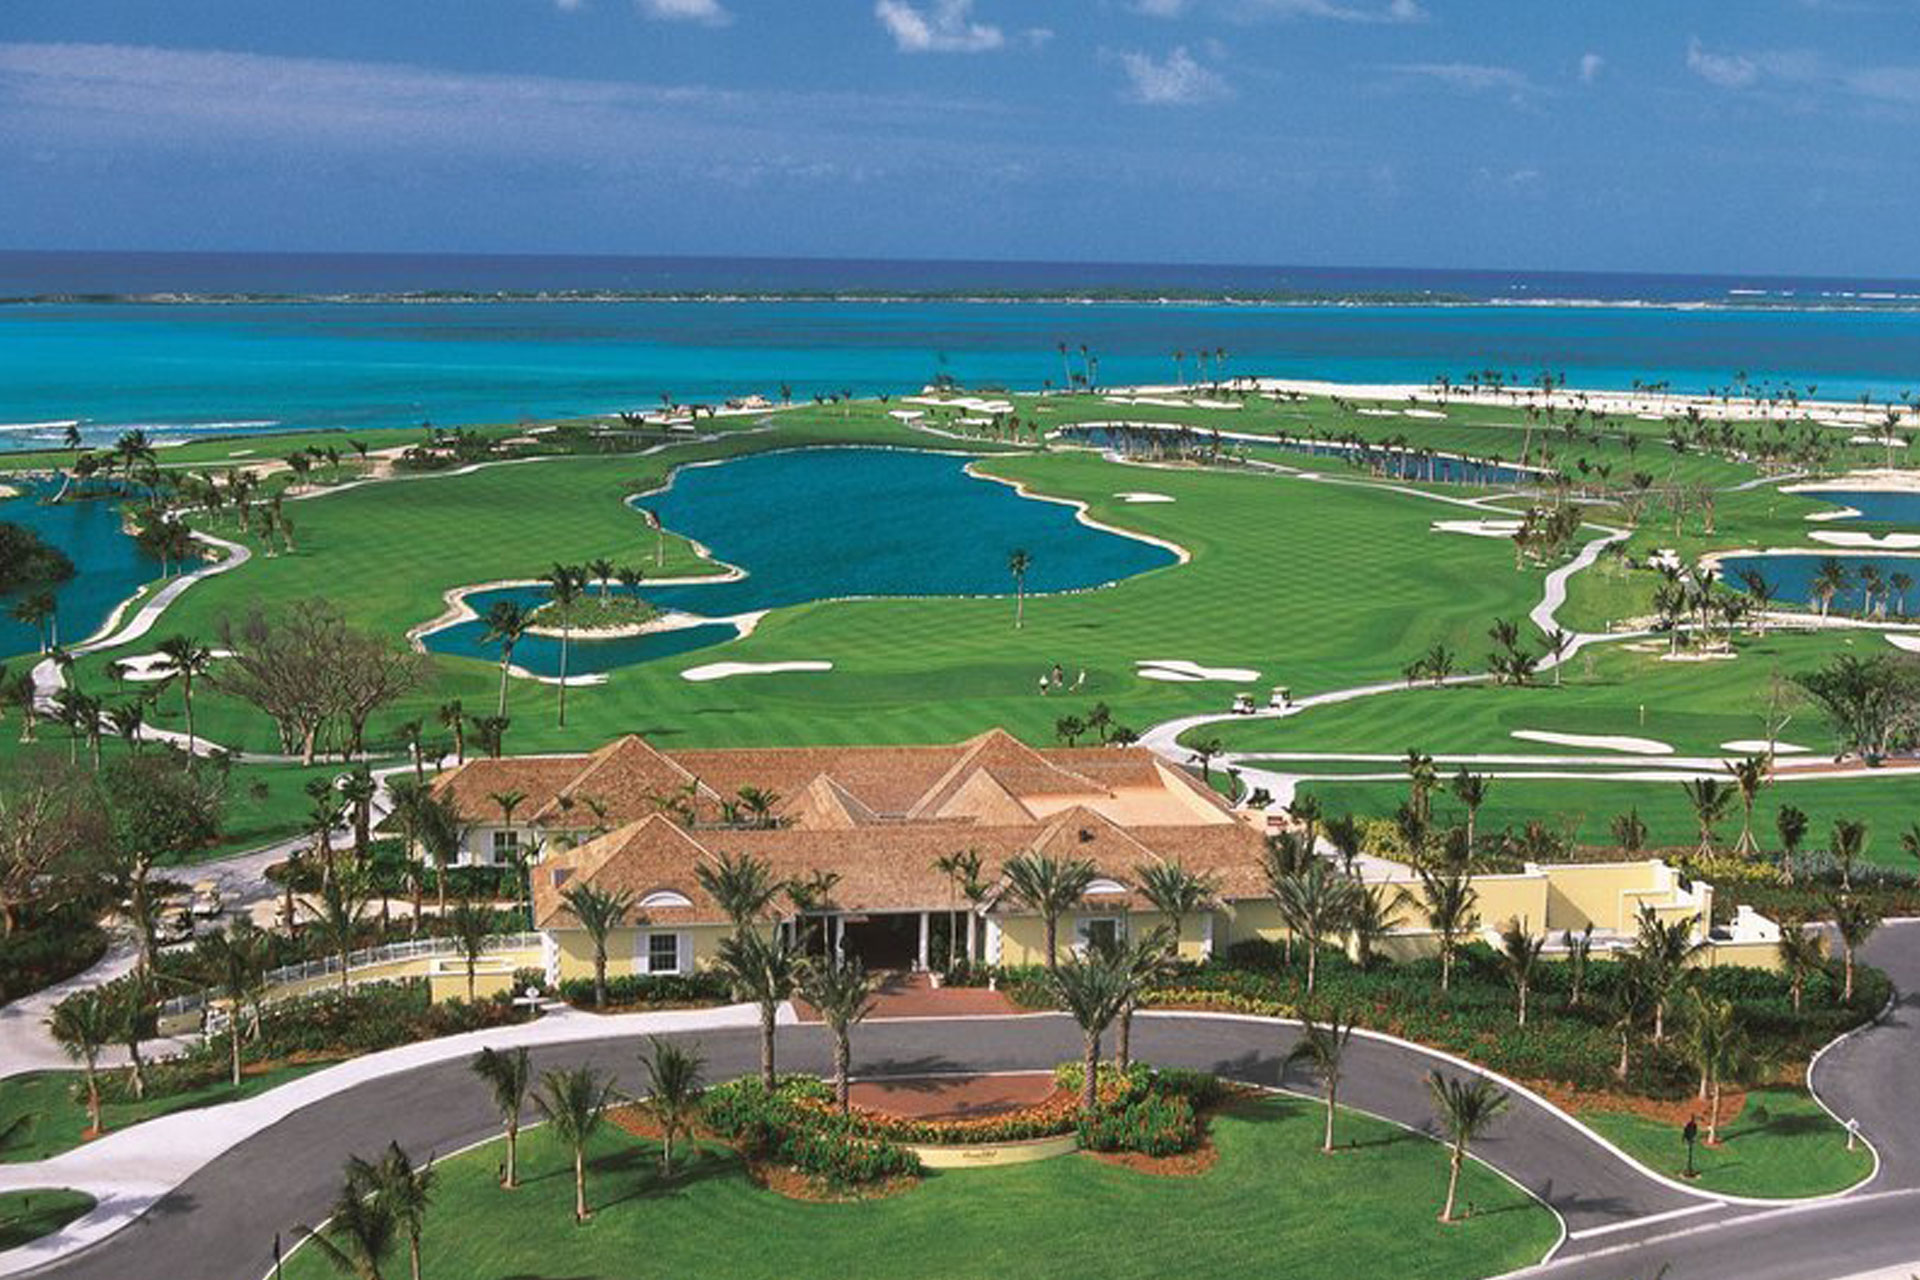 Atlantis Golf; Courtesy of Atlantis Resort